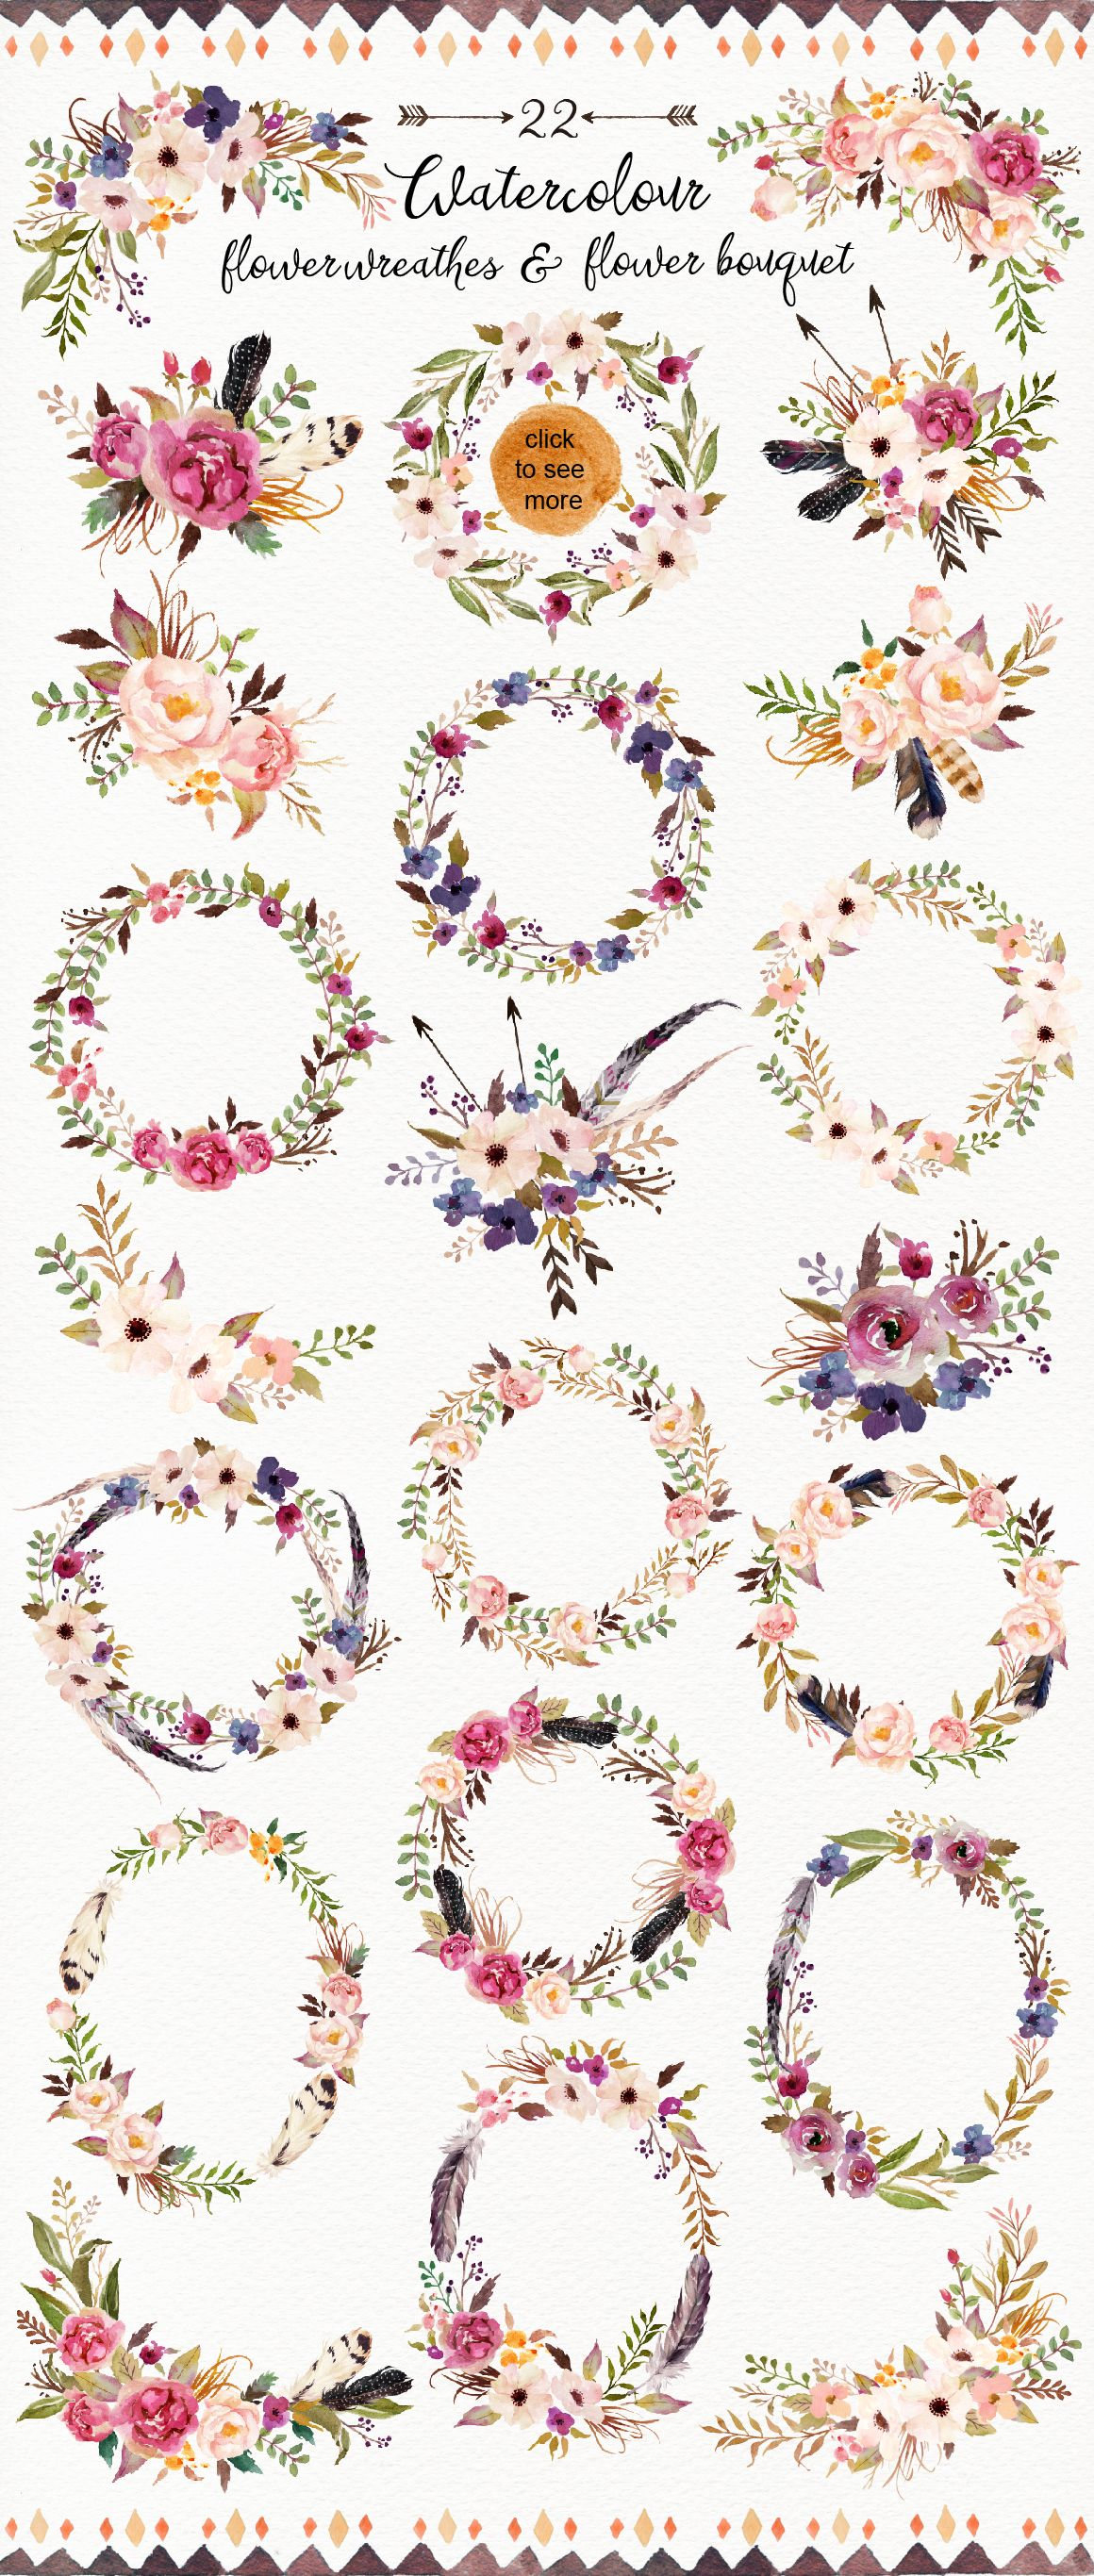 Watercolor flowers png clipart illustrations on creative market - Watercolour Tribe Flower Diy Bonus By Graphic Box On Creative Market Die Als Stickers